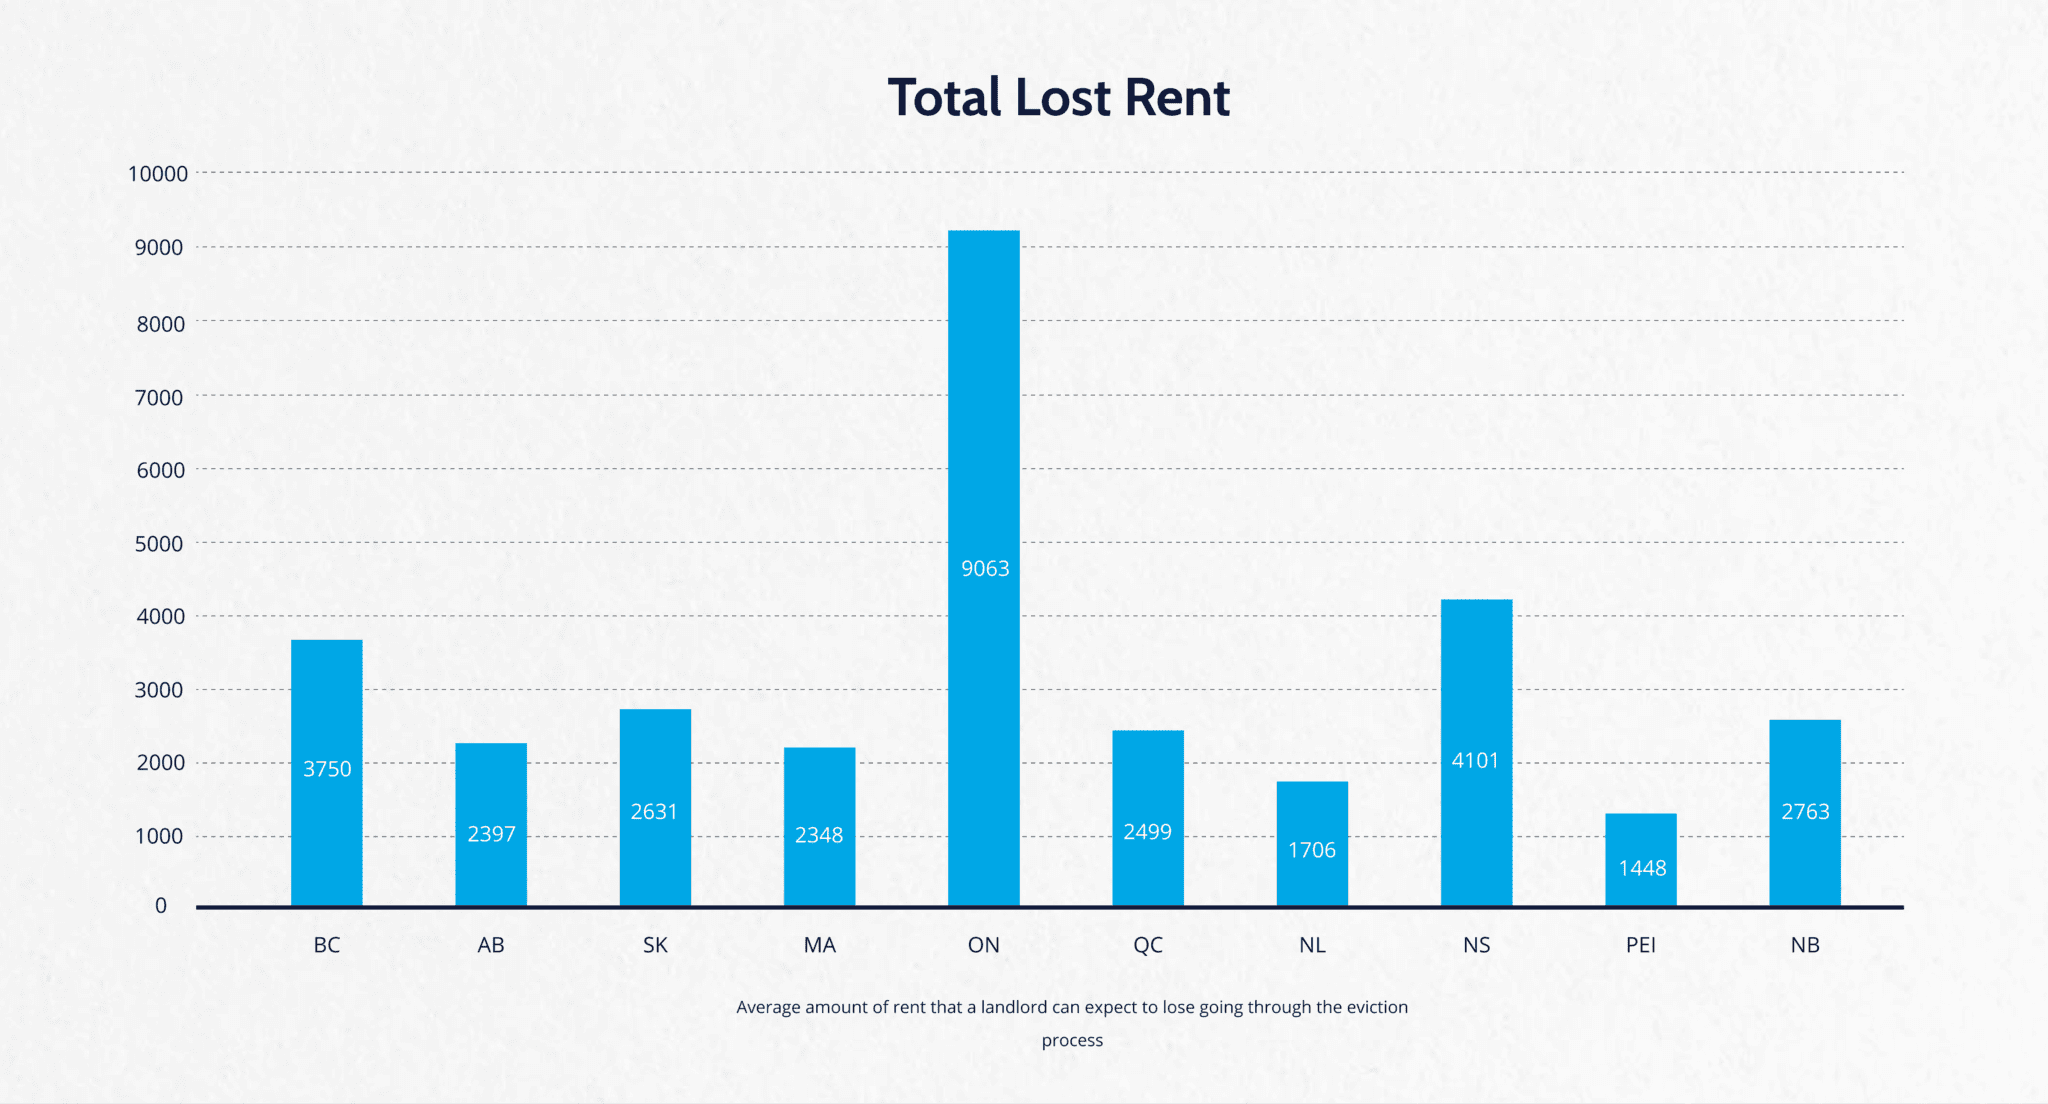 Total Lost Rent by Province